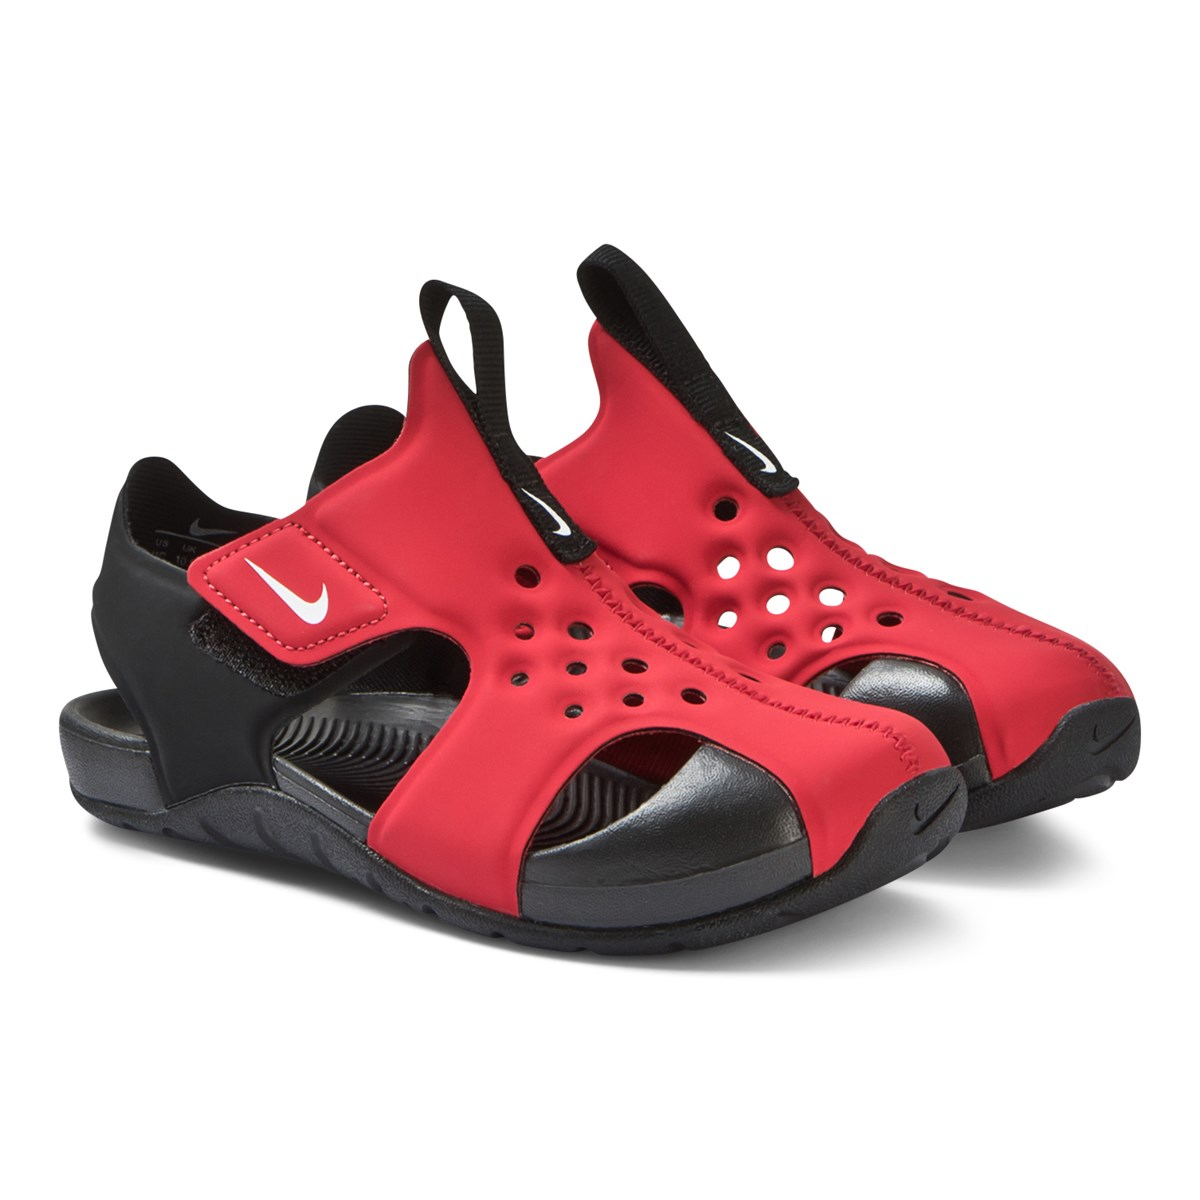 994e6914d2ca Nike Red and Black Nike Sunray Protect 2 Sandals